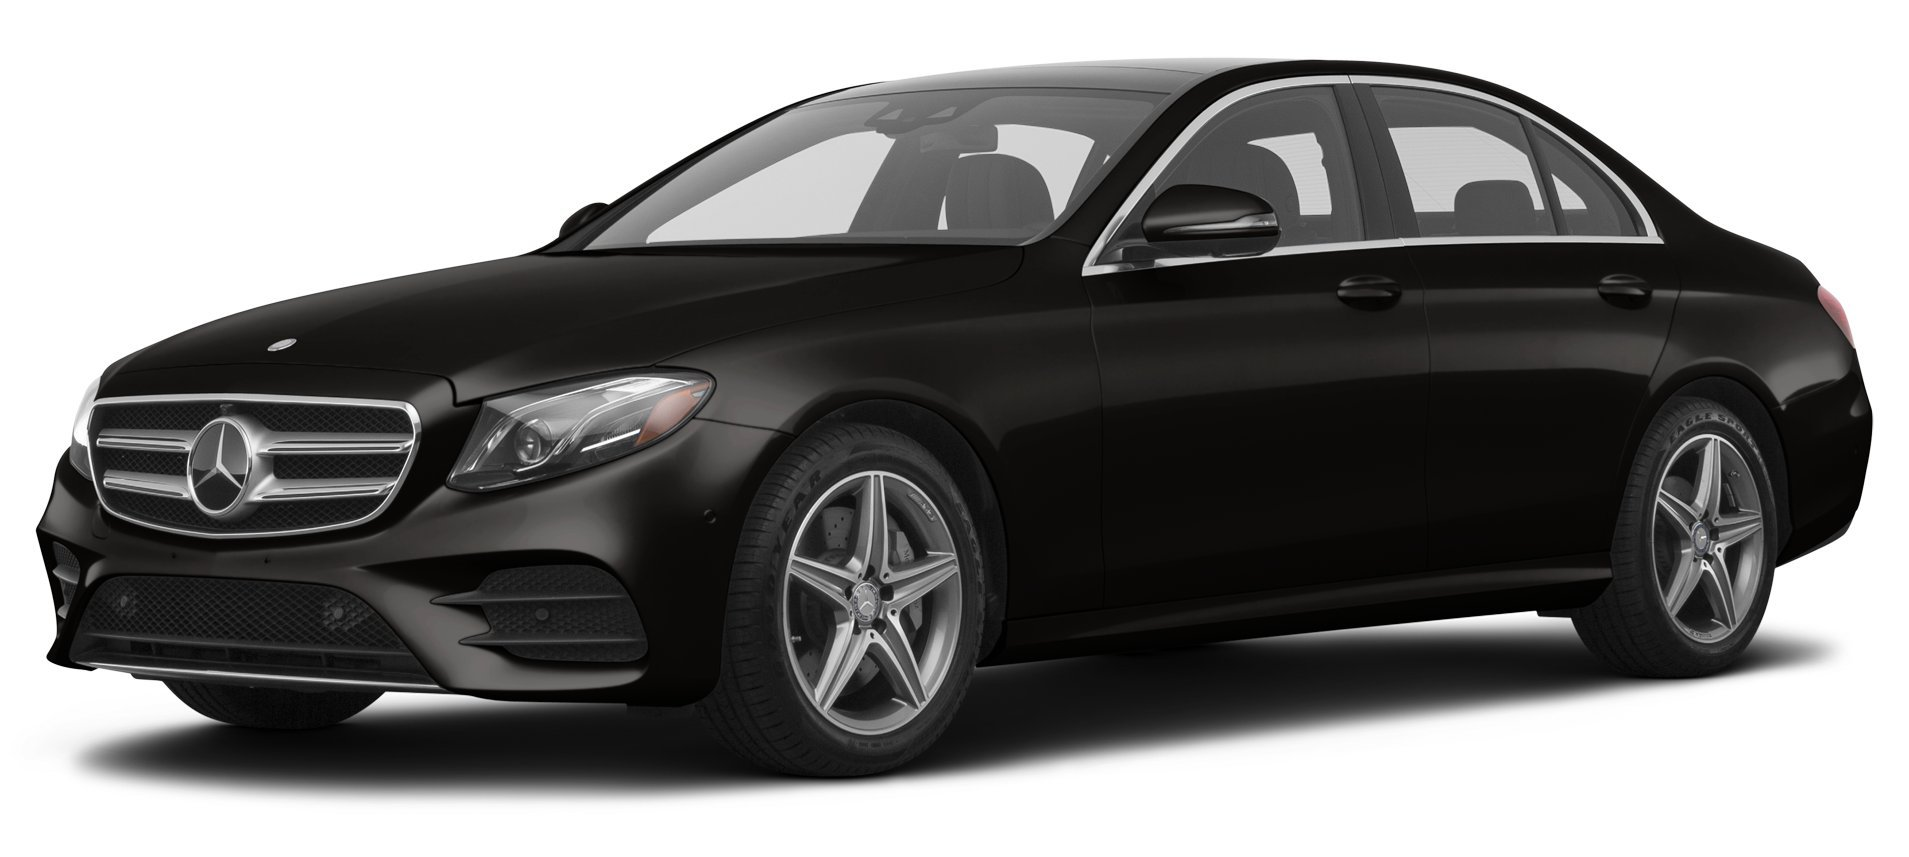 2017 mercedes benz e300 reviews images and for Mercedes benz 4matic meaning